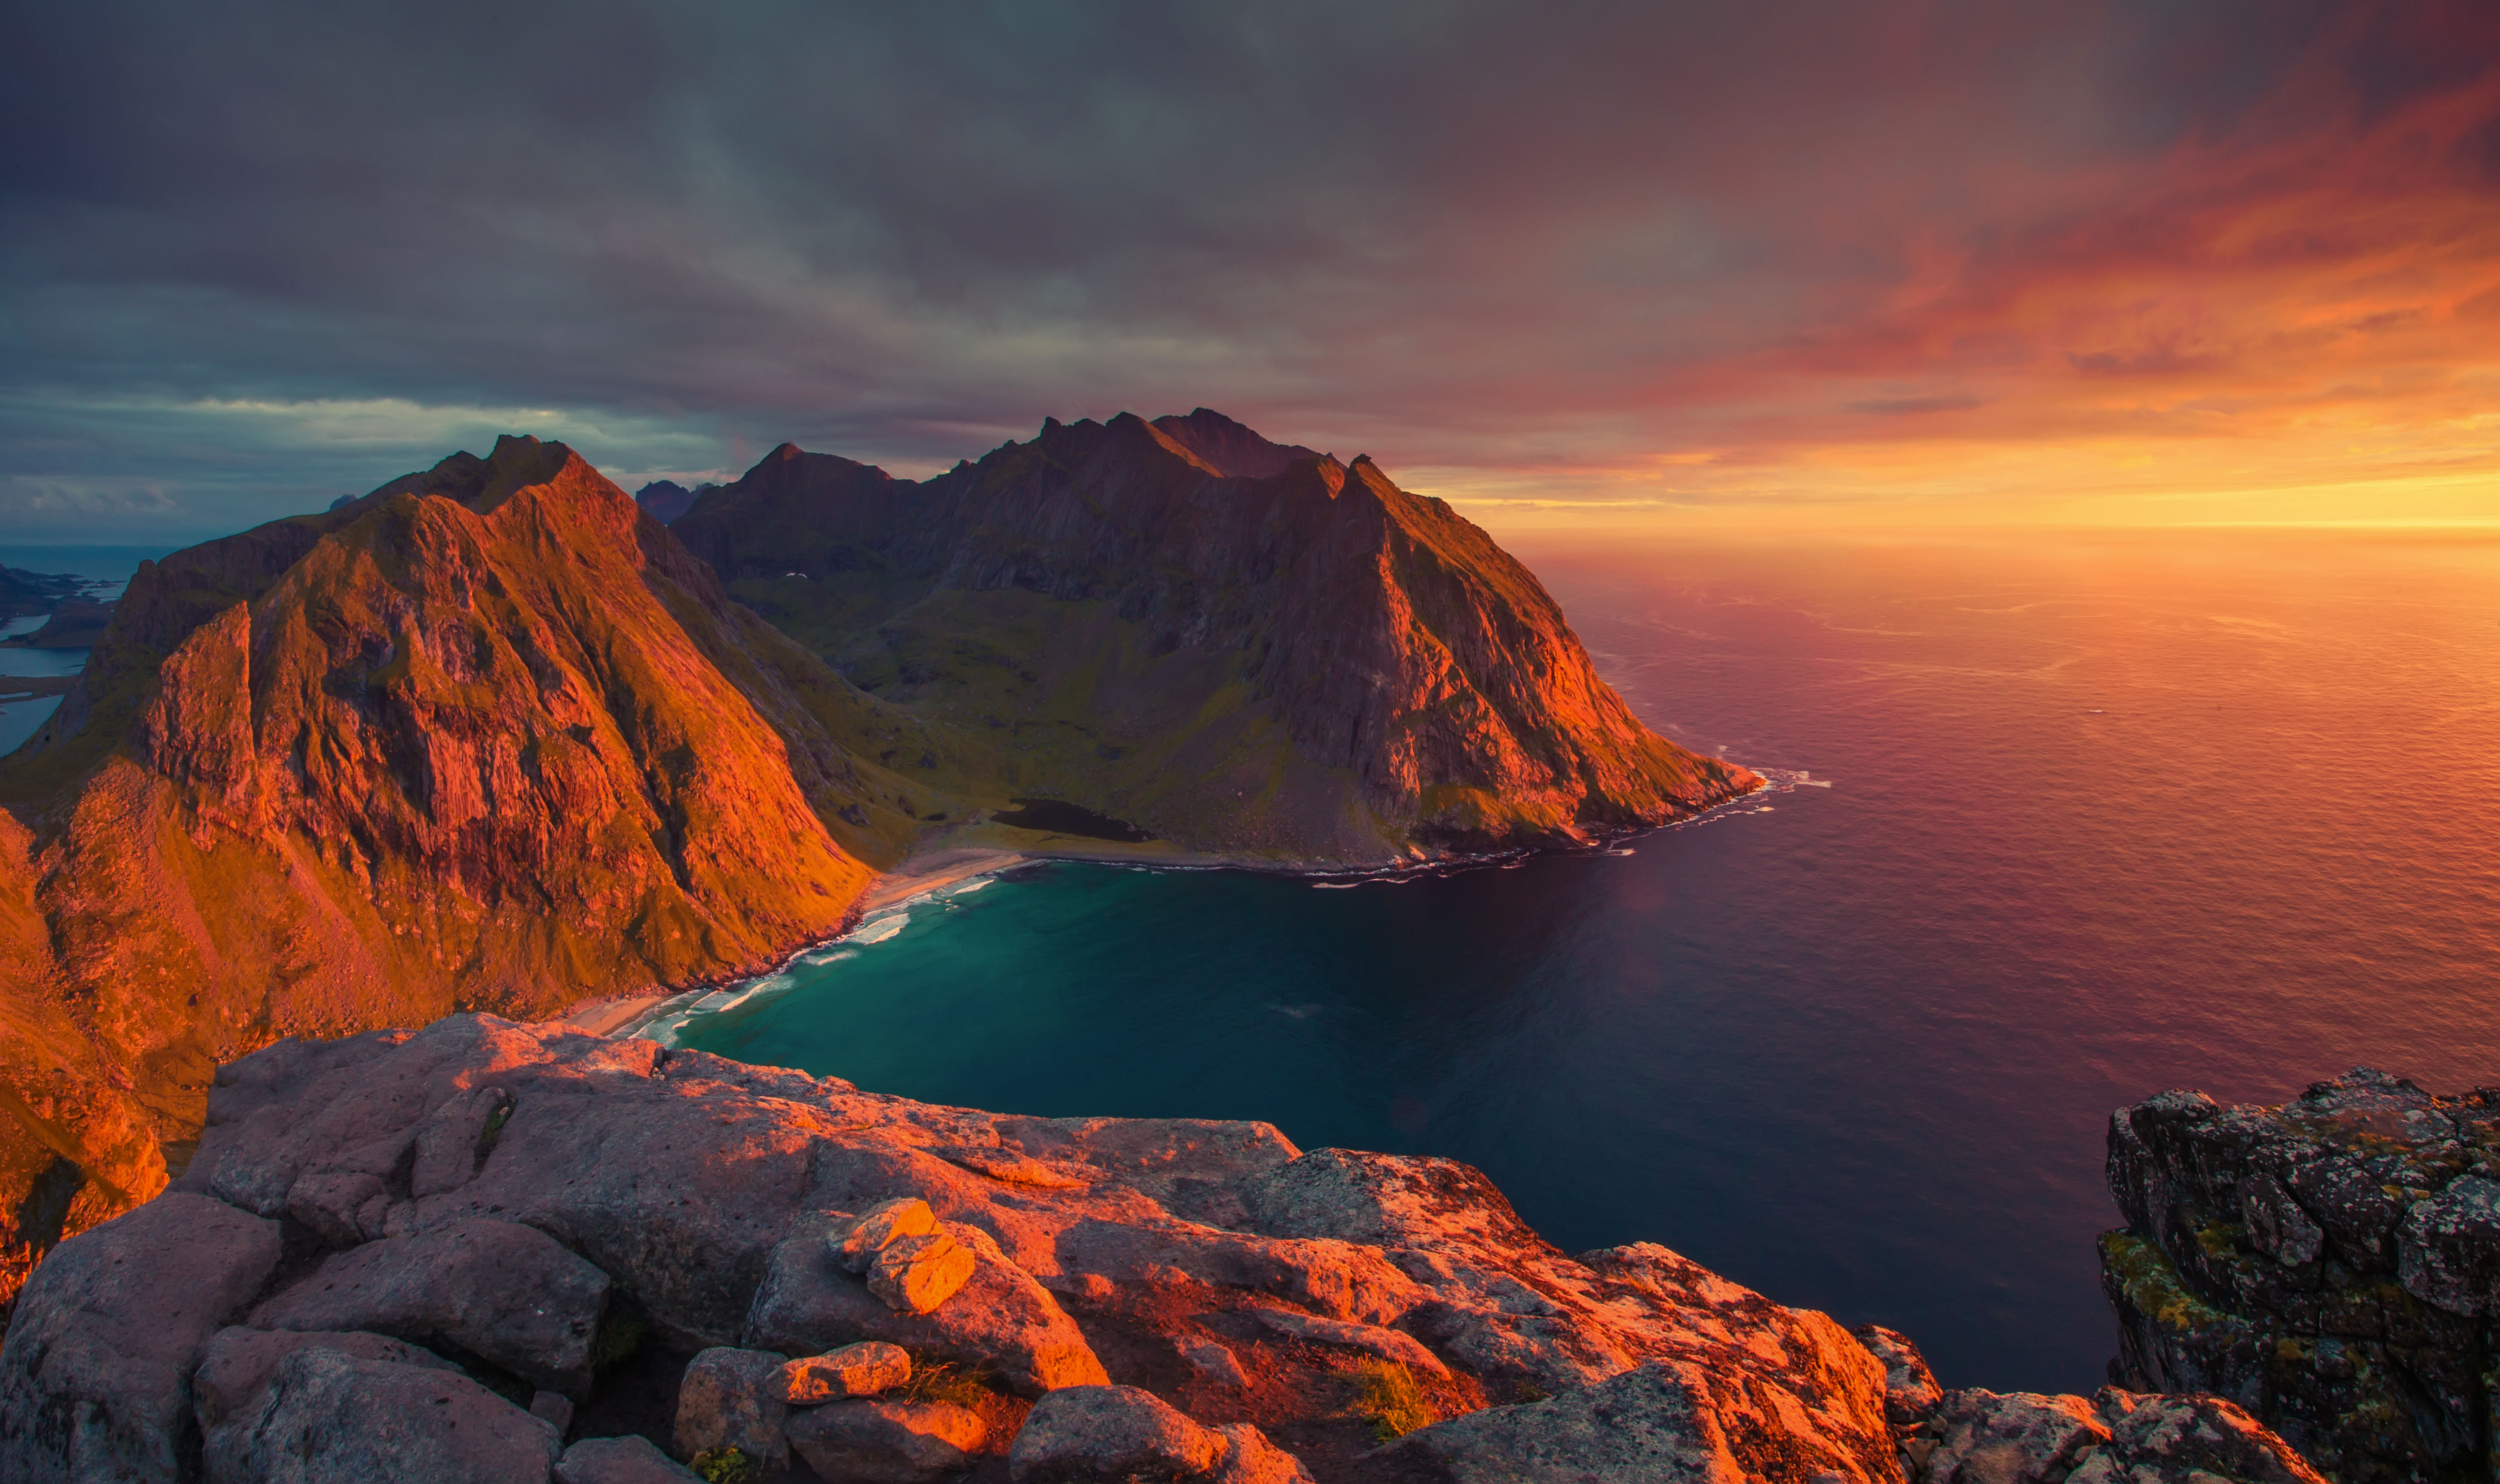 North sunset in Norway. Stunning sea view from mountains. Beautiful bay in evening sunlight. Lofoten islands landscape.